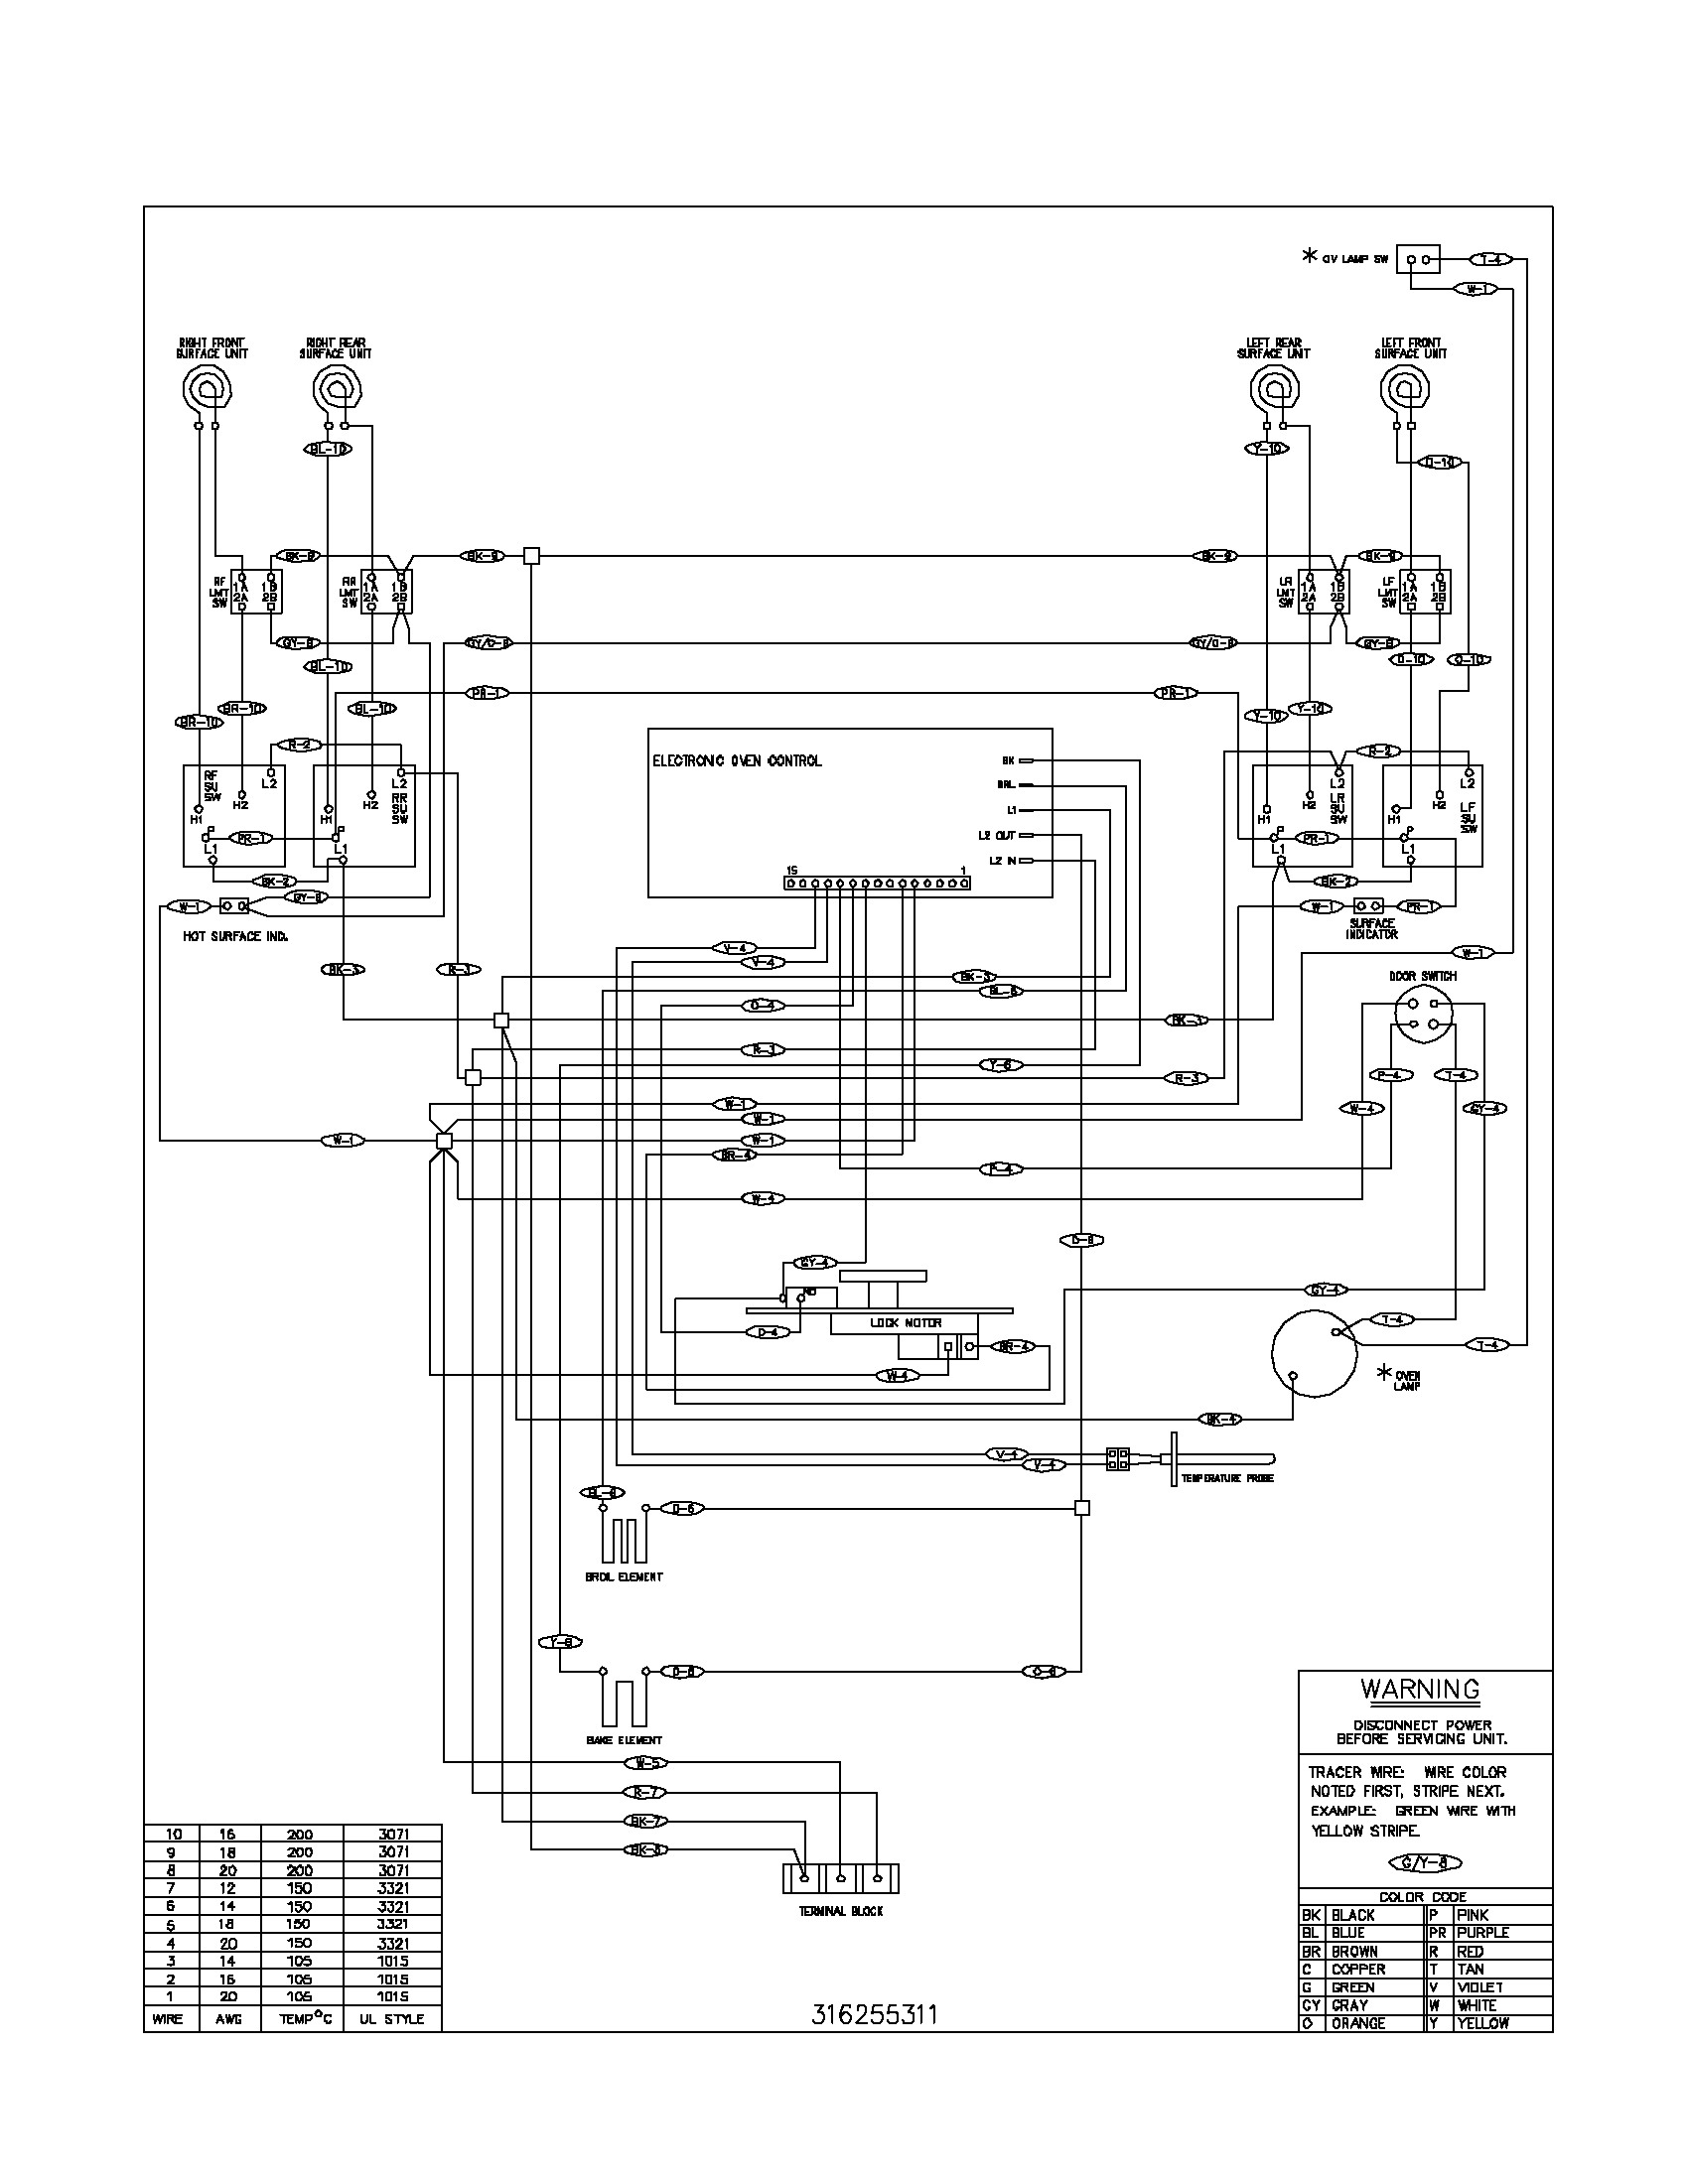 Schneider Electric Wiring Diagram